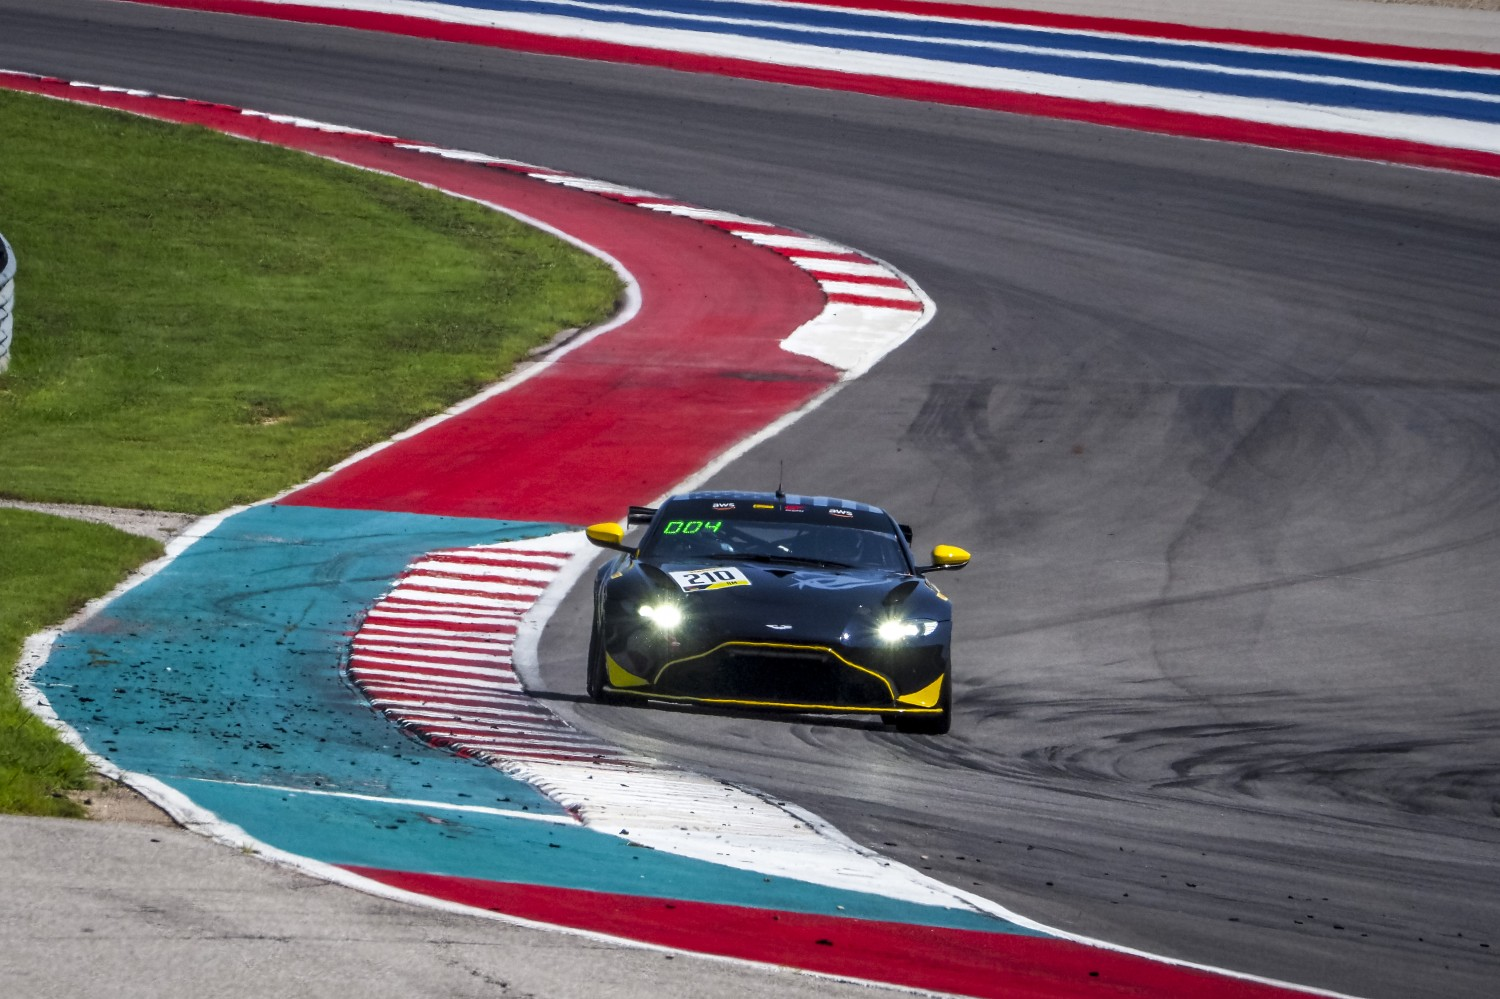 #210 Aston Martin Vantage GT4 of Michael Dinan, Flying Lizard Motorsports, GT4 Sprint Am, SRO America, Circuit of the Americas, Austin TX, September 2020.  | Brian Cleary/SRO